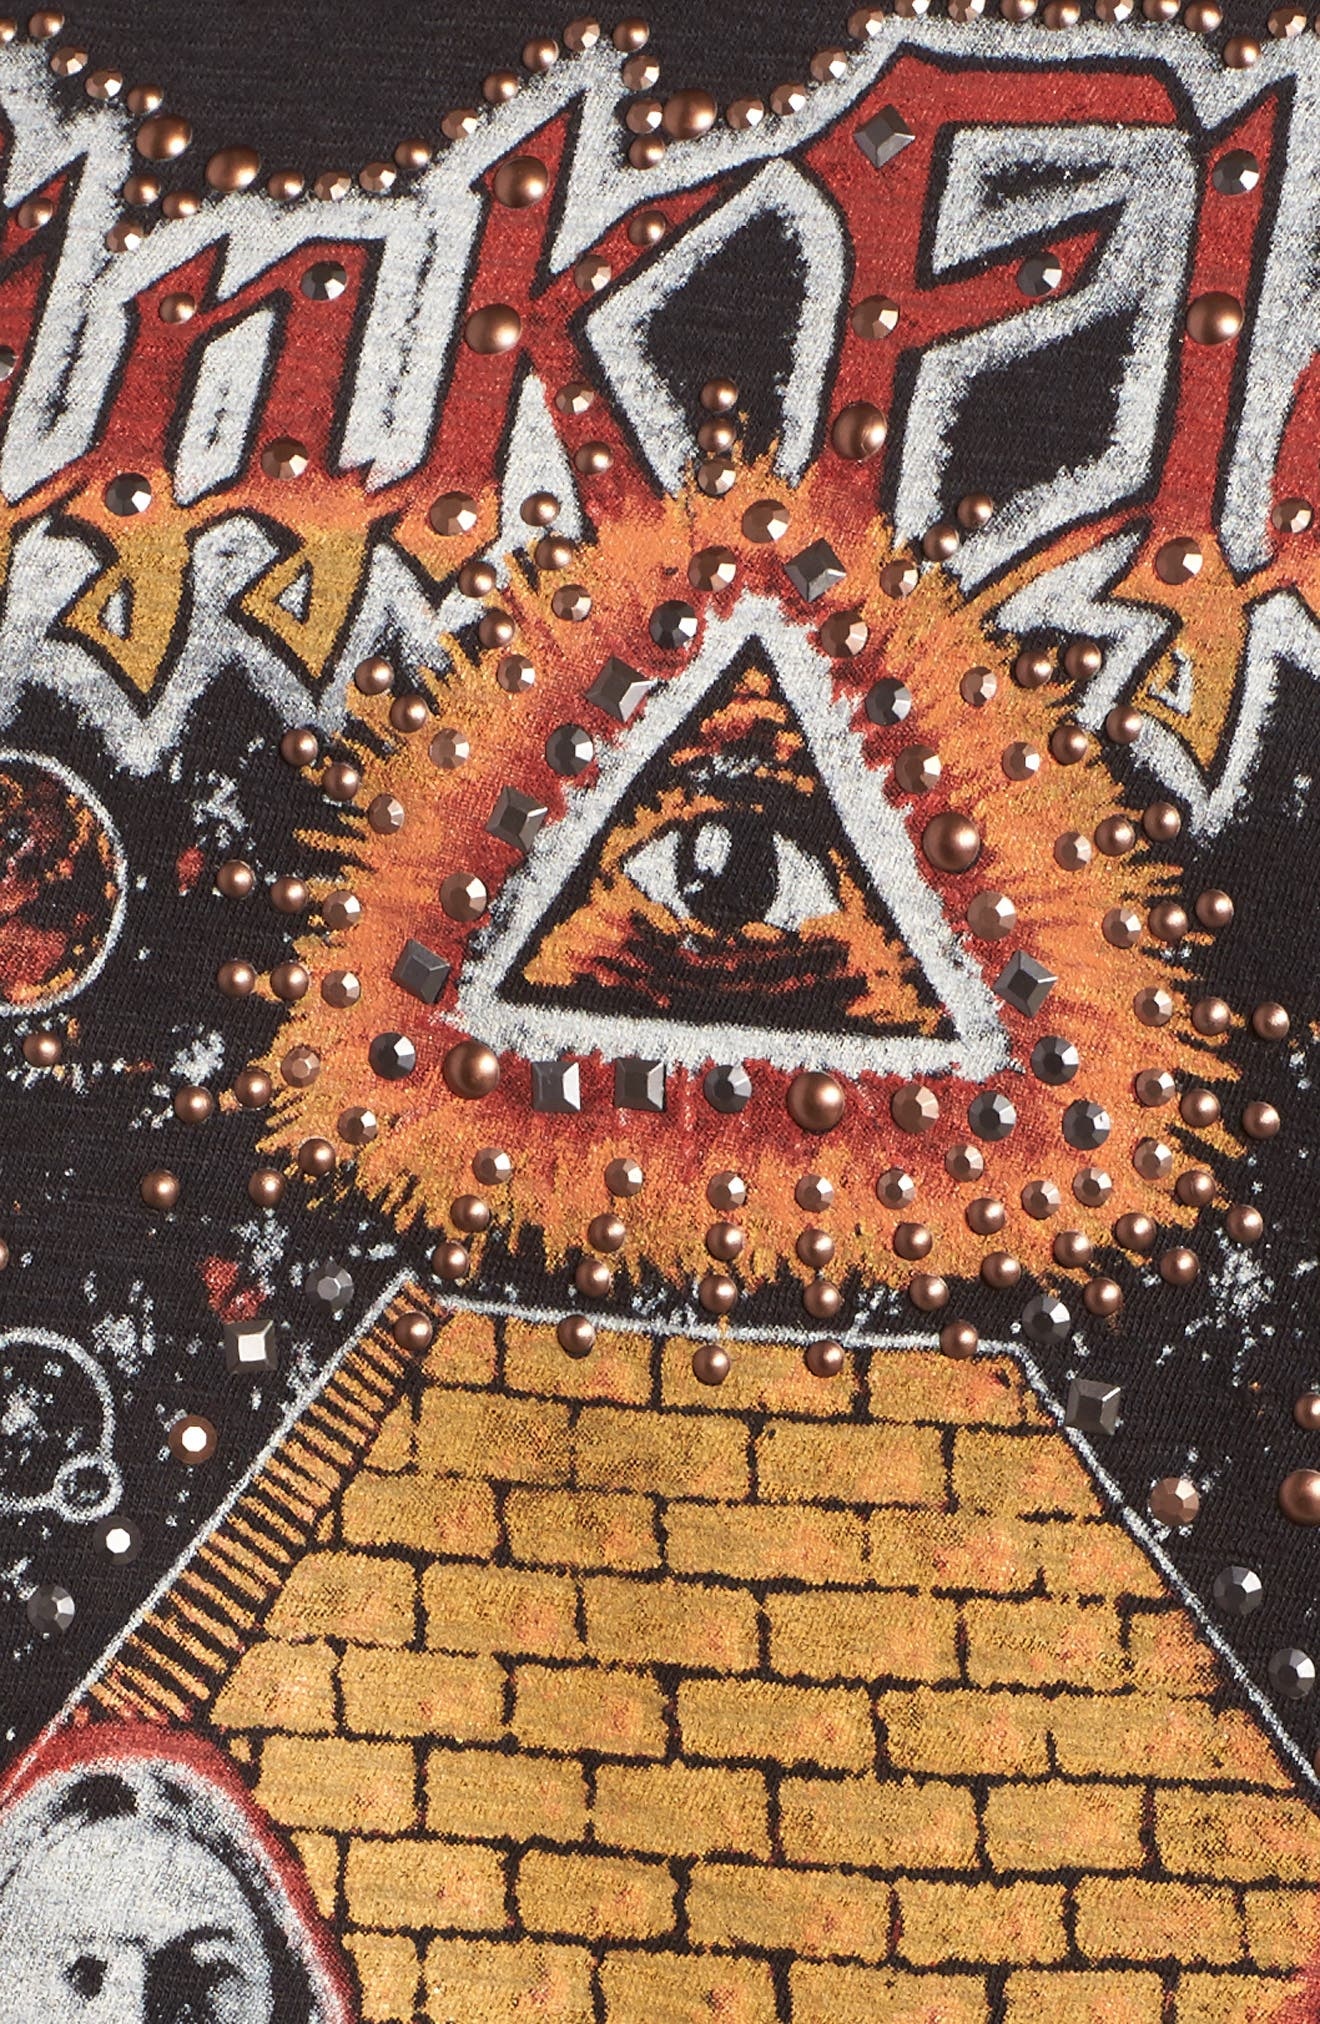 Studded Pink Floyd Graphic Tee,                             Alternate thumbnail 5, color,                             001